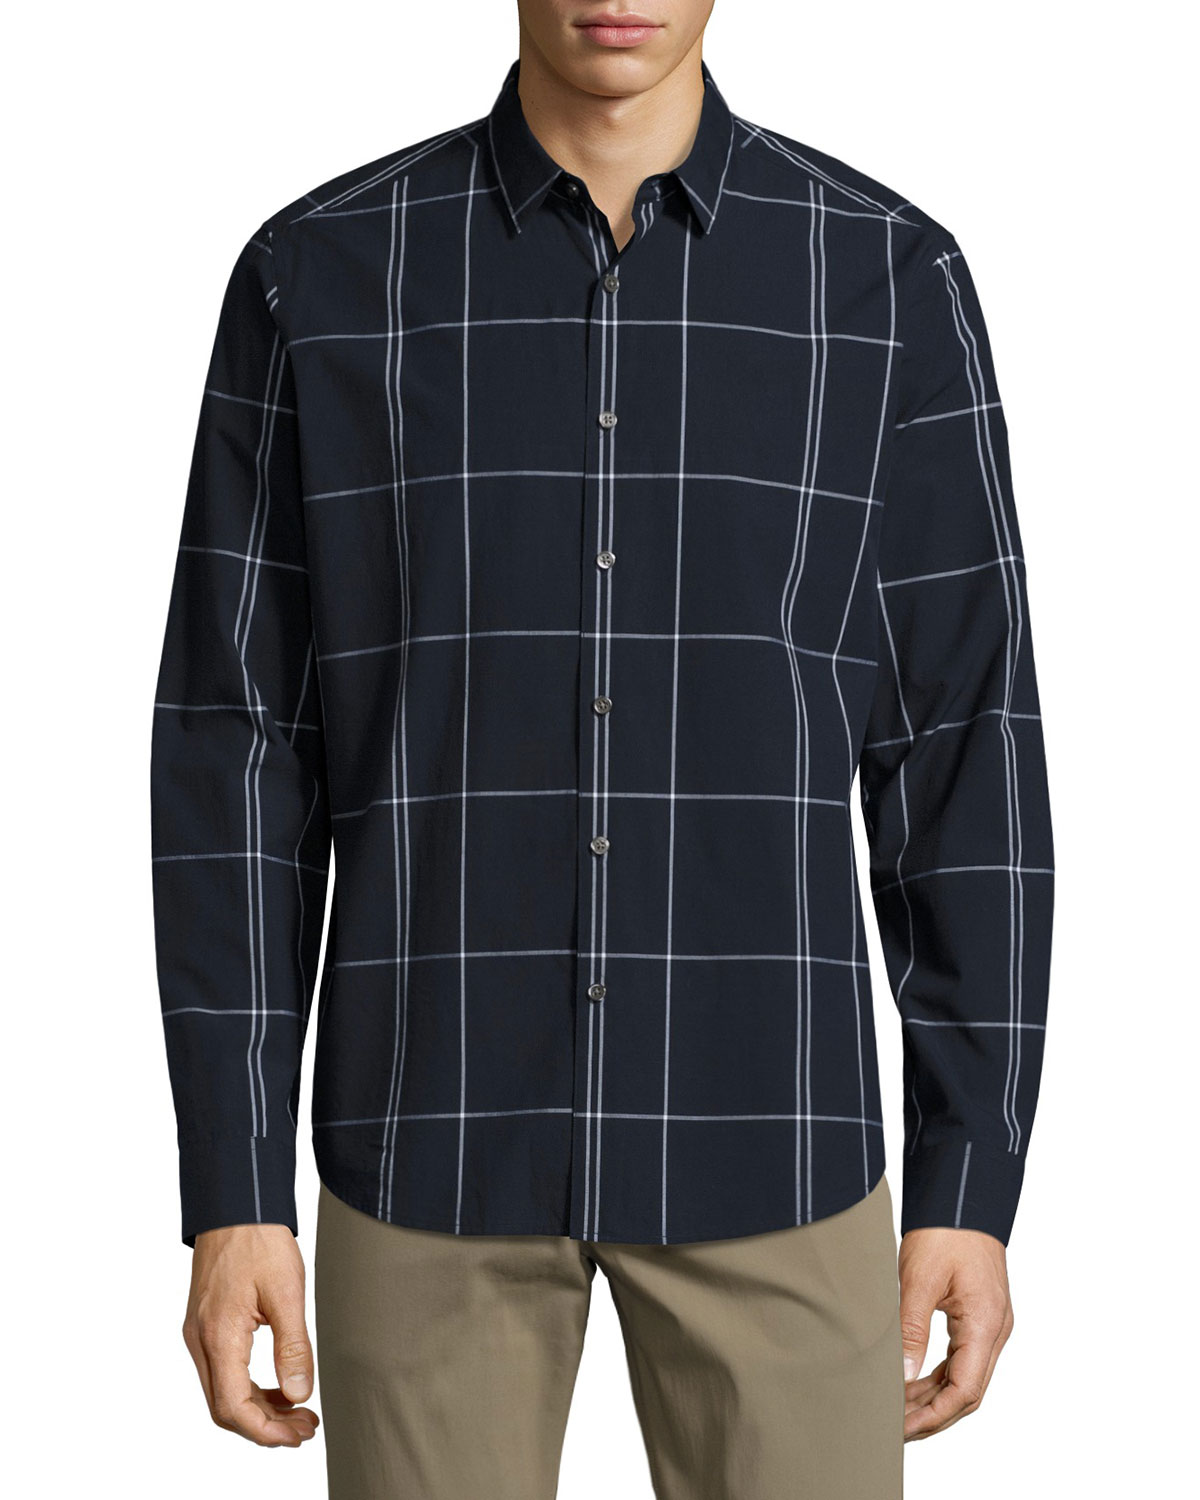 Zack Large Grid Sport Shirt, Navy